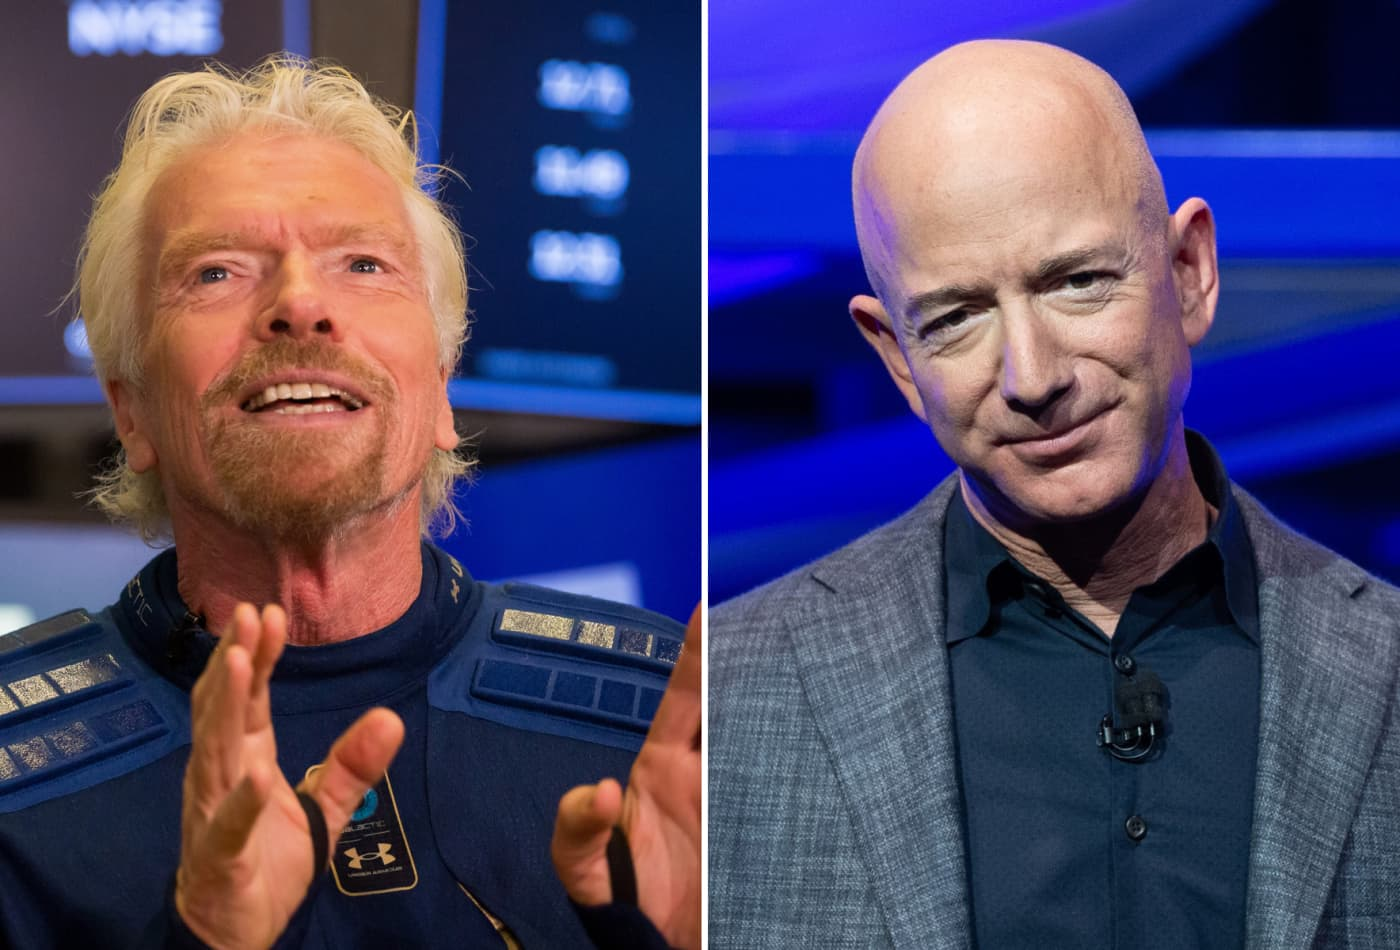 Virgin Galactic is losing space tourism first-mover advantage to Blue Origin, says UBS